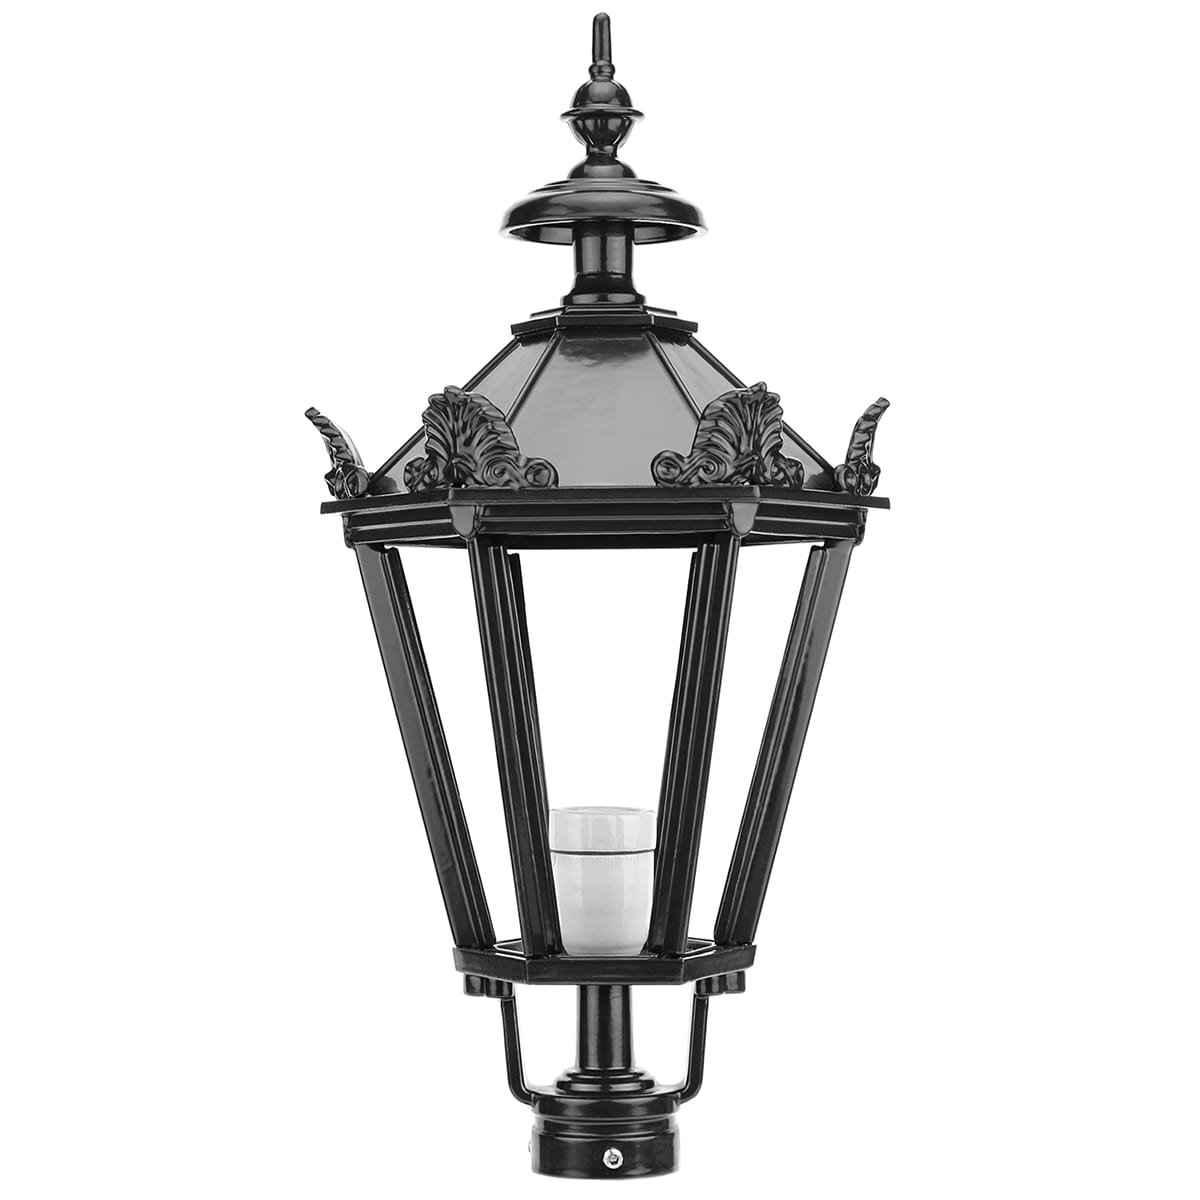 Outdoor lighting Classic Rural Loose lantern shade K11+ with crowns - 75 cm